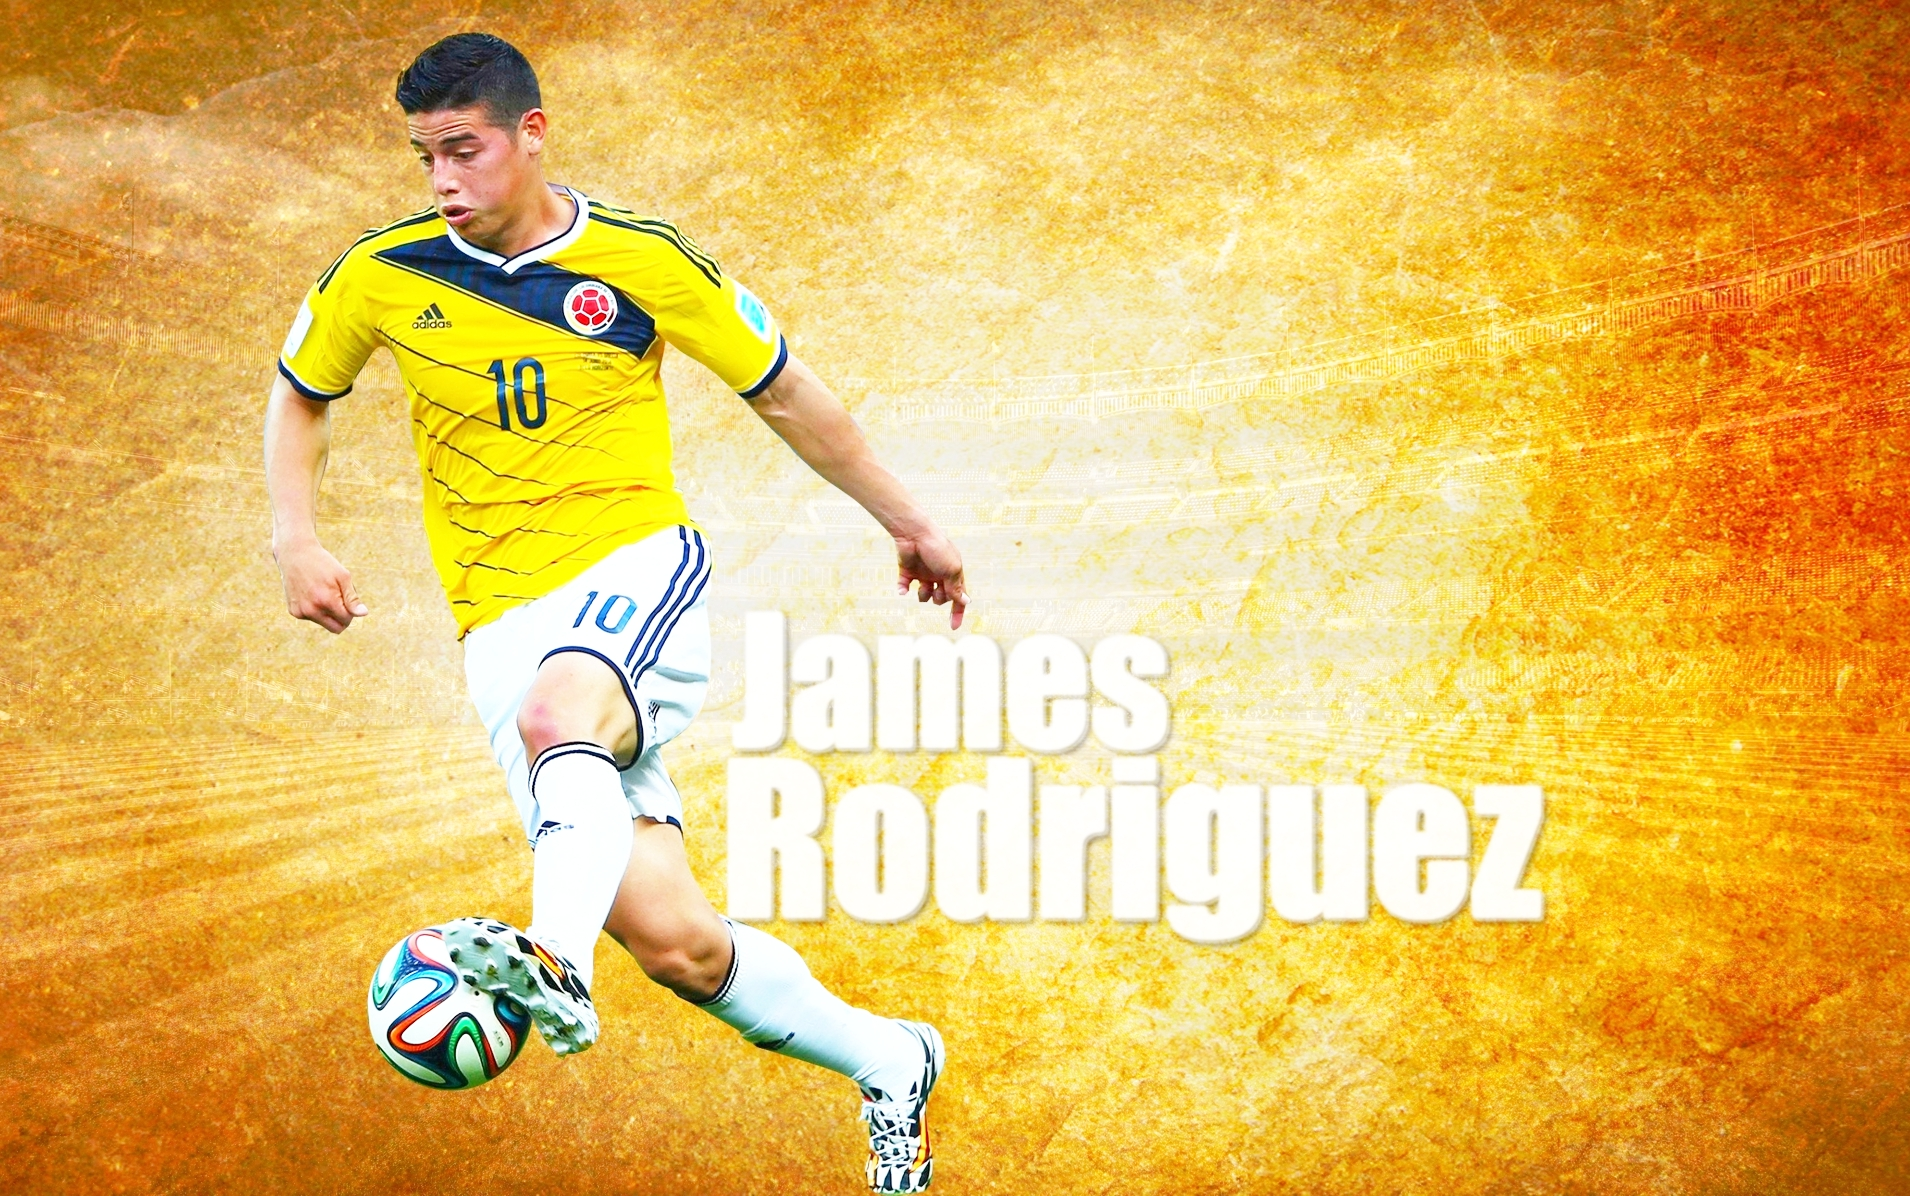 New james rodriguez hq wallpapers full hd pictures - James rodriguez wallpaper hd ...